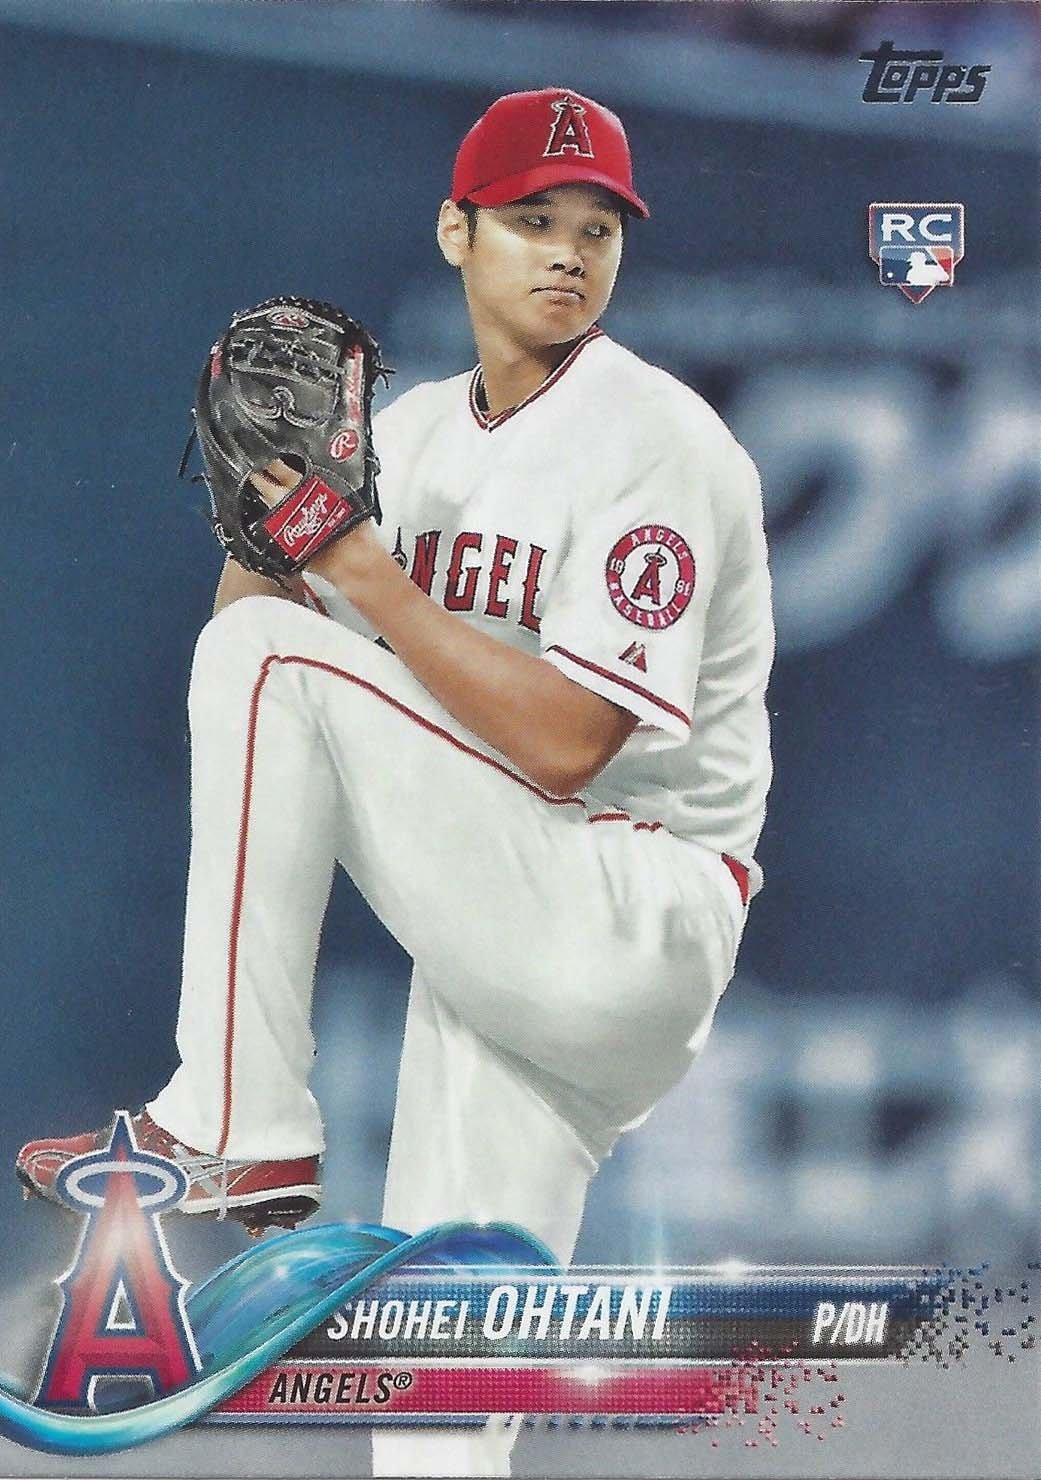 Rafael Devers Plus Ronald Acuna 2018 Topps HOBBY Version Factory Sealed Baseball 705 Card Set Including 5 FOILBOARD Parallels Found Exclusively in This Version Plus Rookies of Shohei Otani